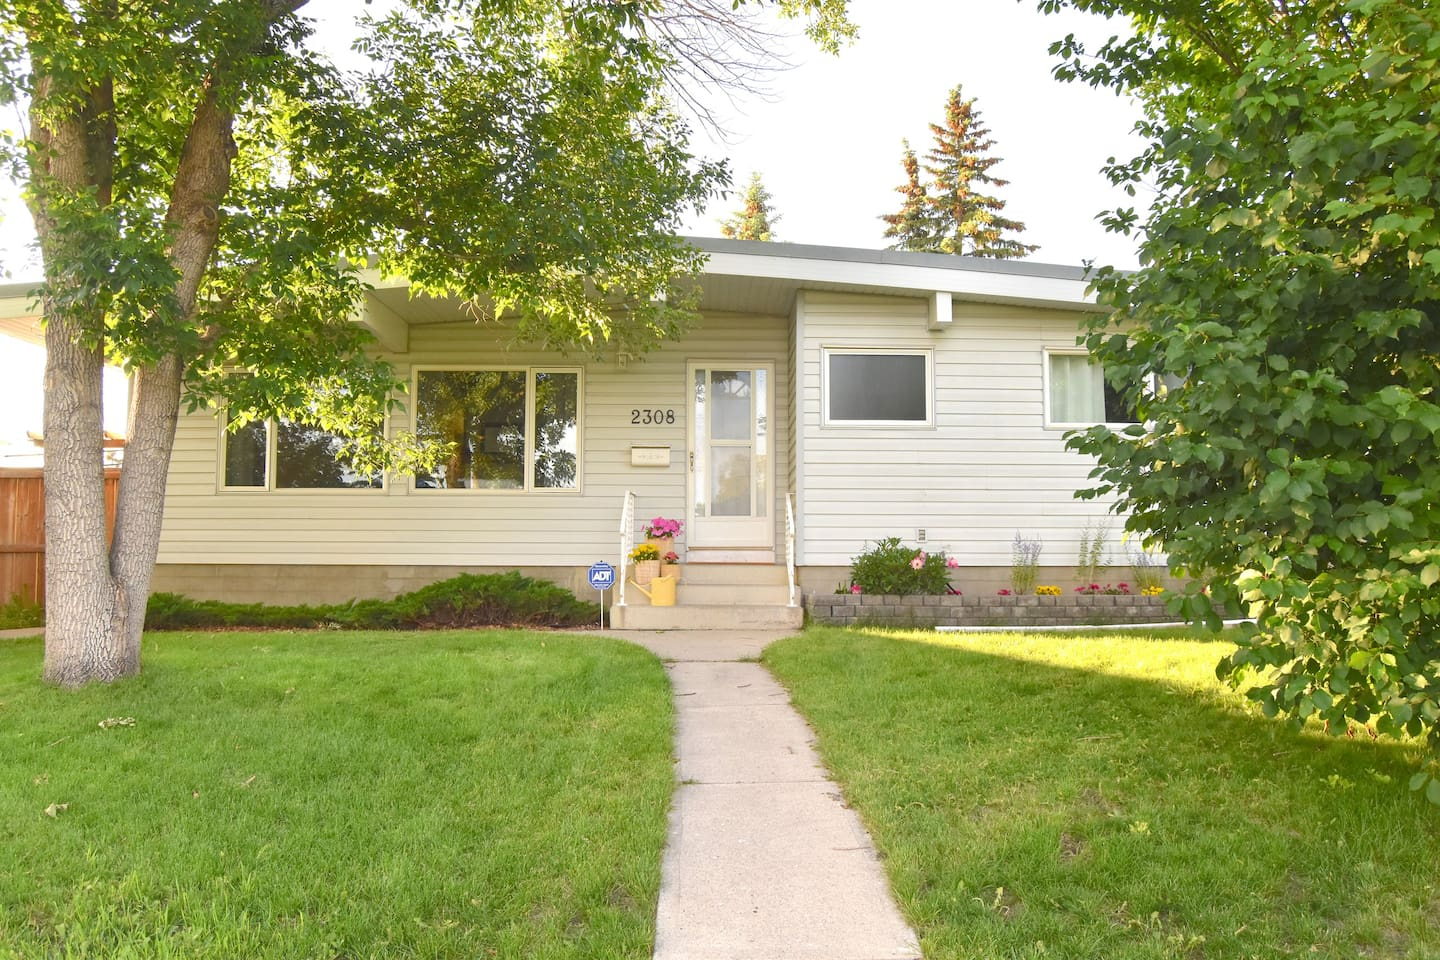 Welcome to our charming bungalow in Mayland Heights!